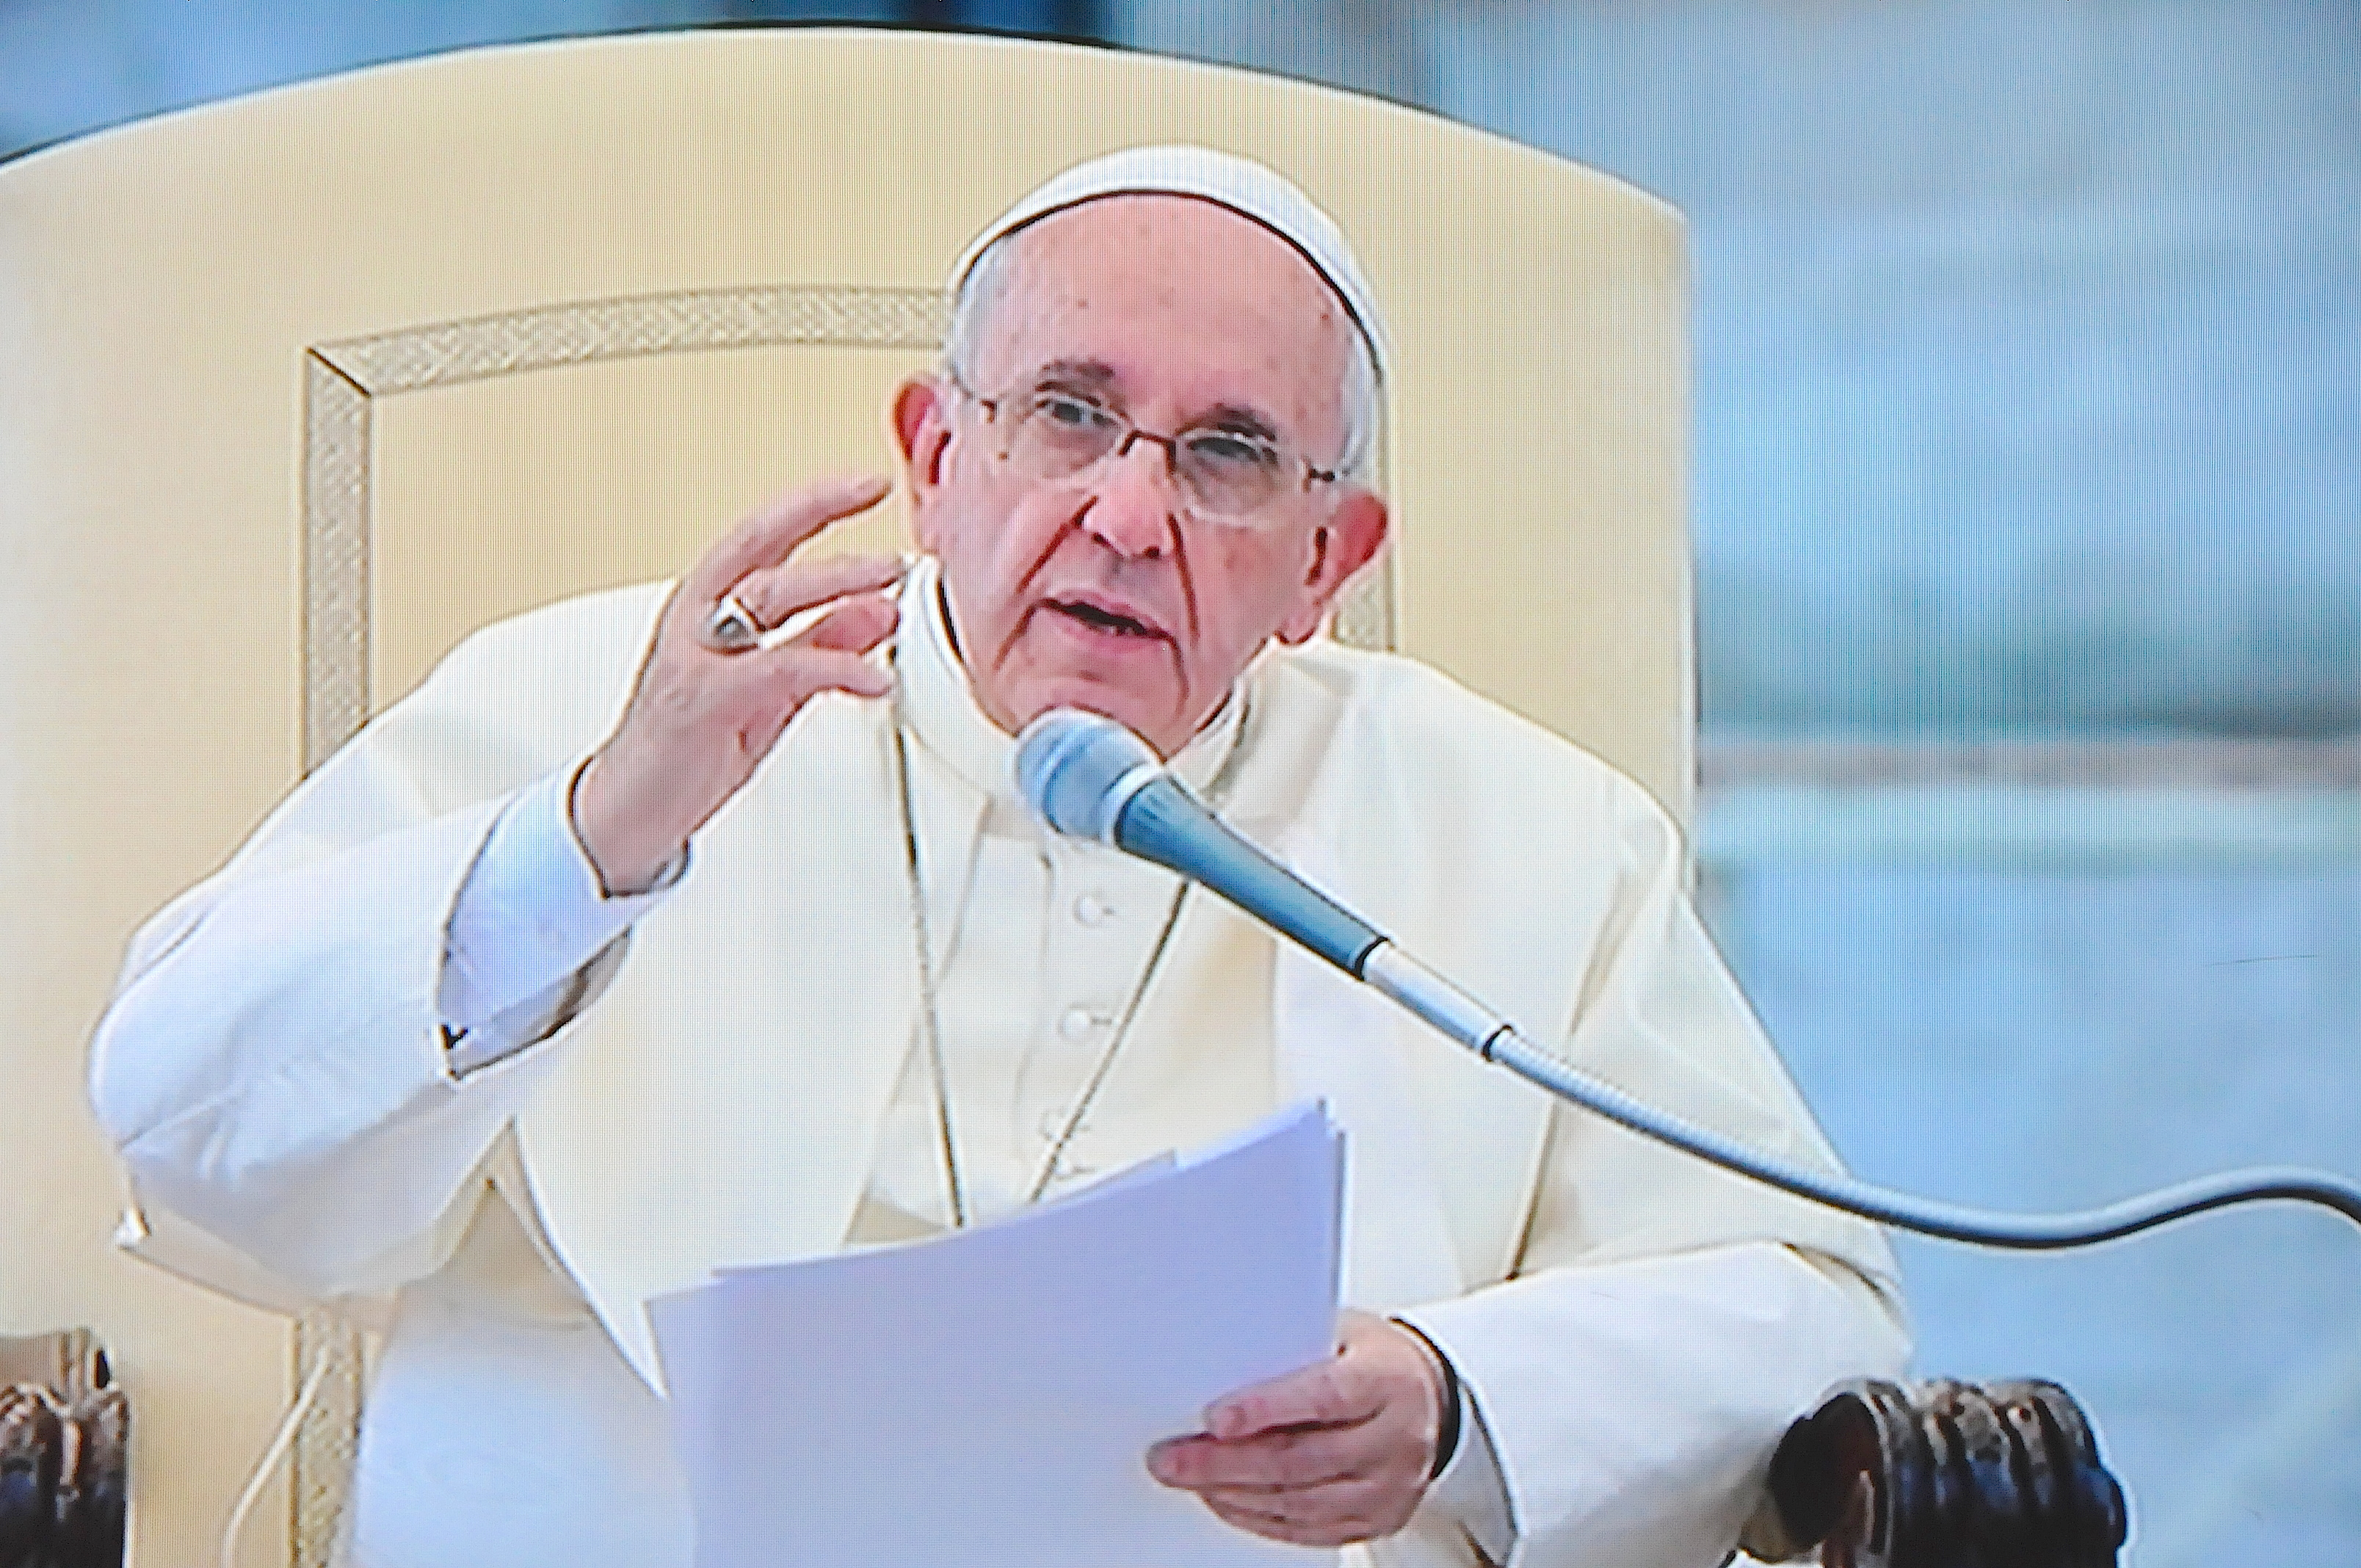 Pope Francis with Charismatic catholic renewal - 3 july 2015